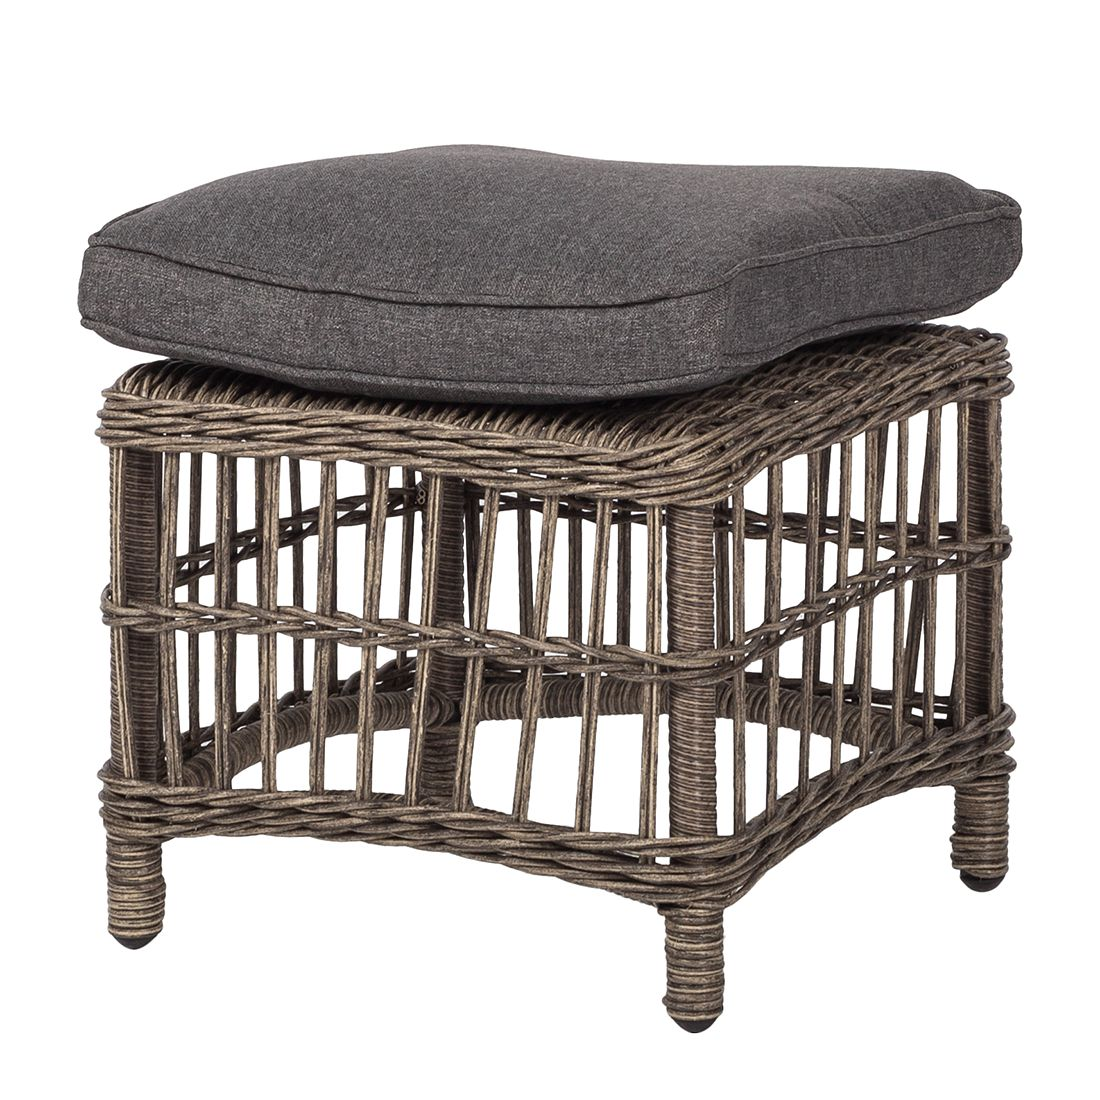 Hocker Rose Bay - Polyrattan, Maison Belfort